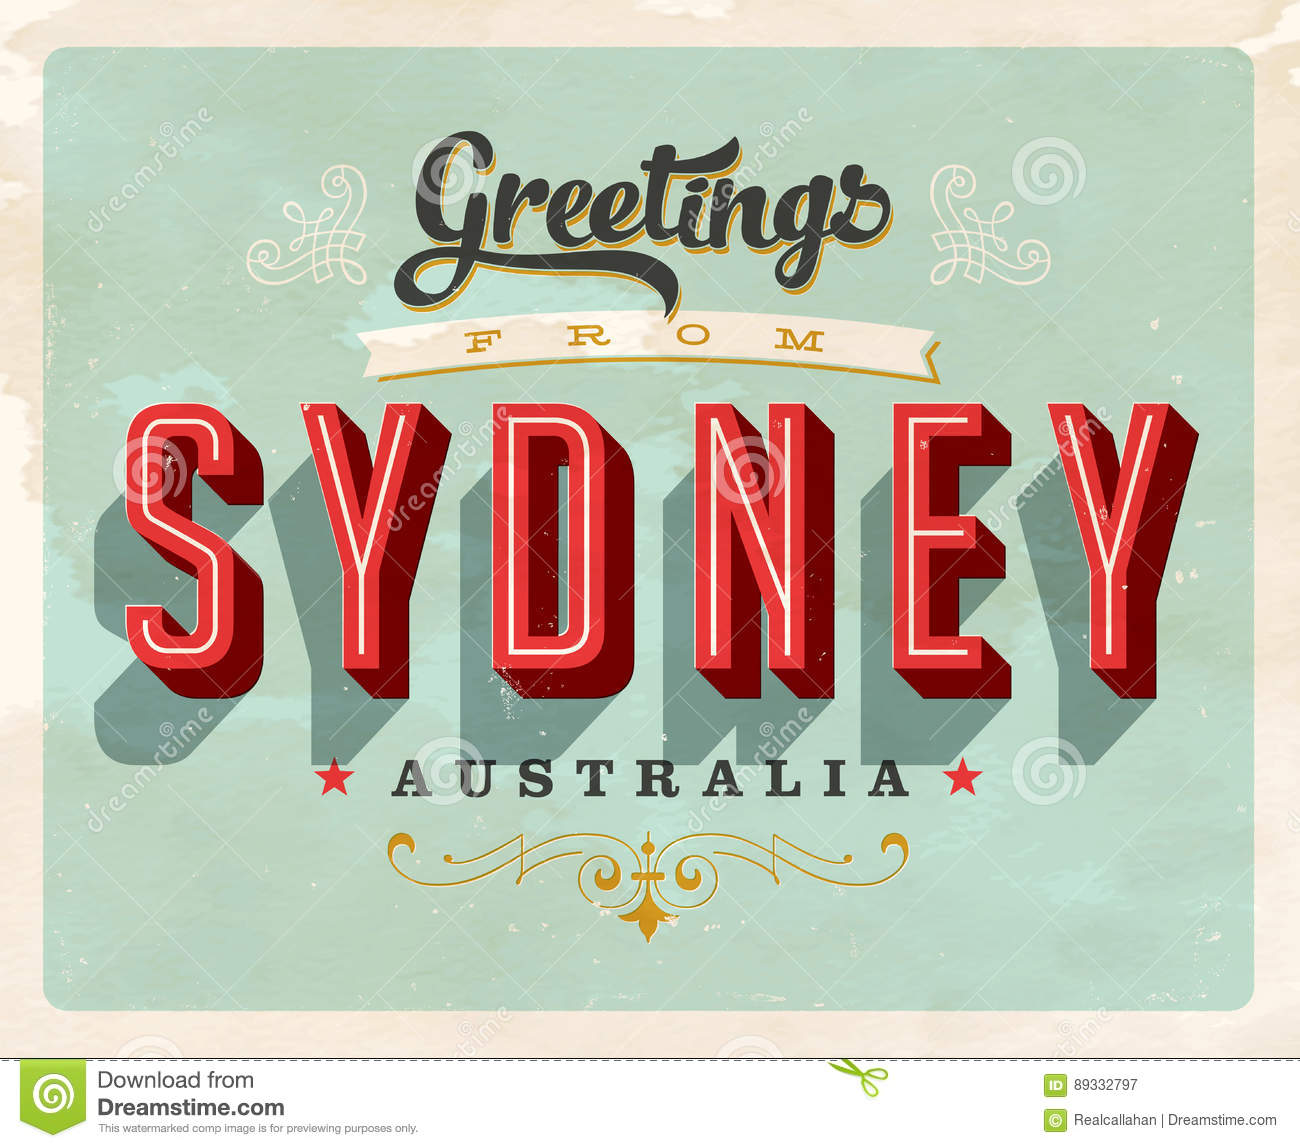 Vintage greetings from sydney australia vacation card stock vector download vintage greetings from sydney australia vacation card stock vector illustration of message m4hsunfo